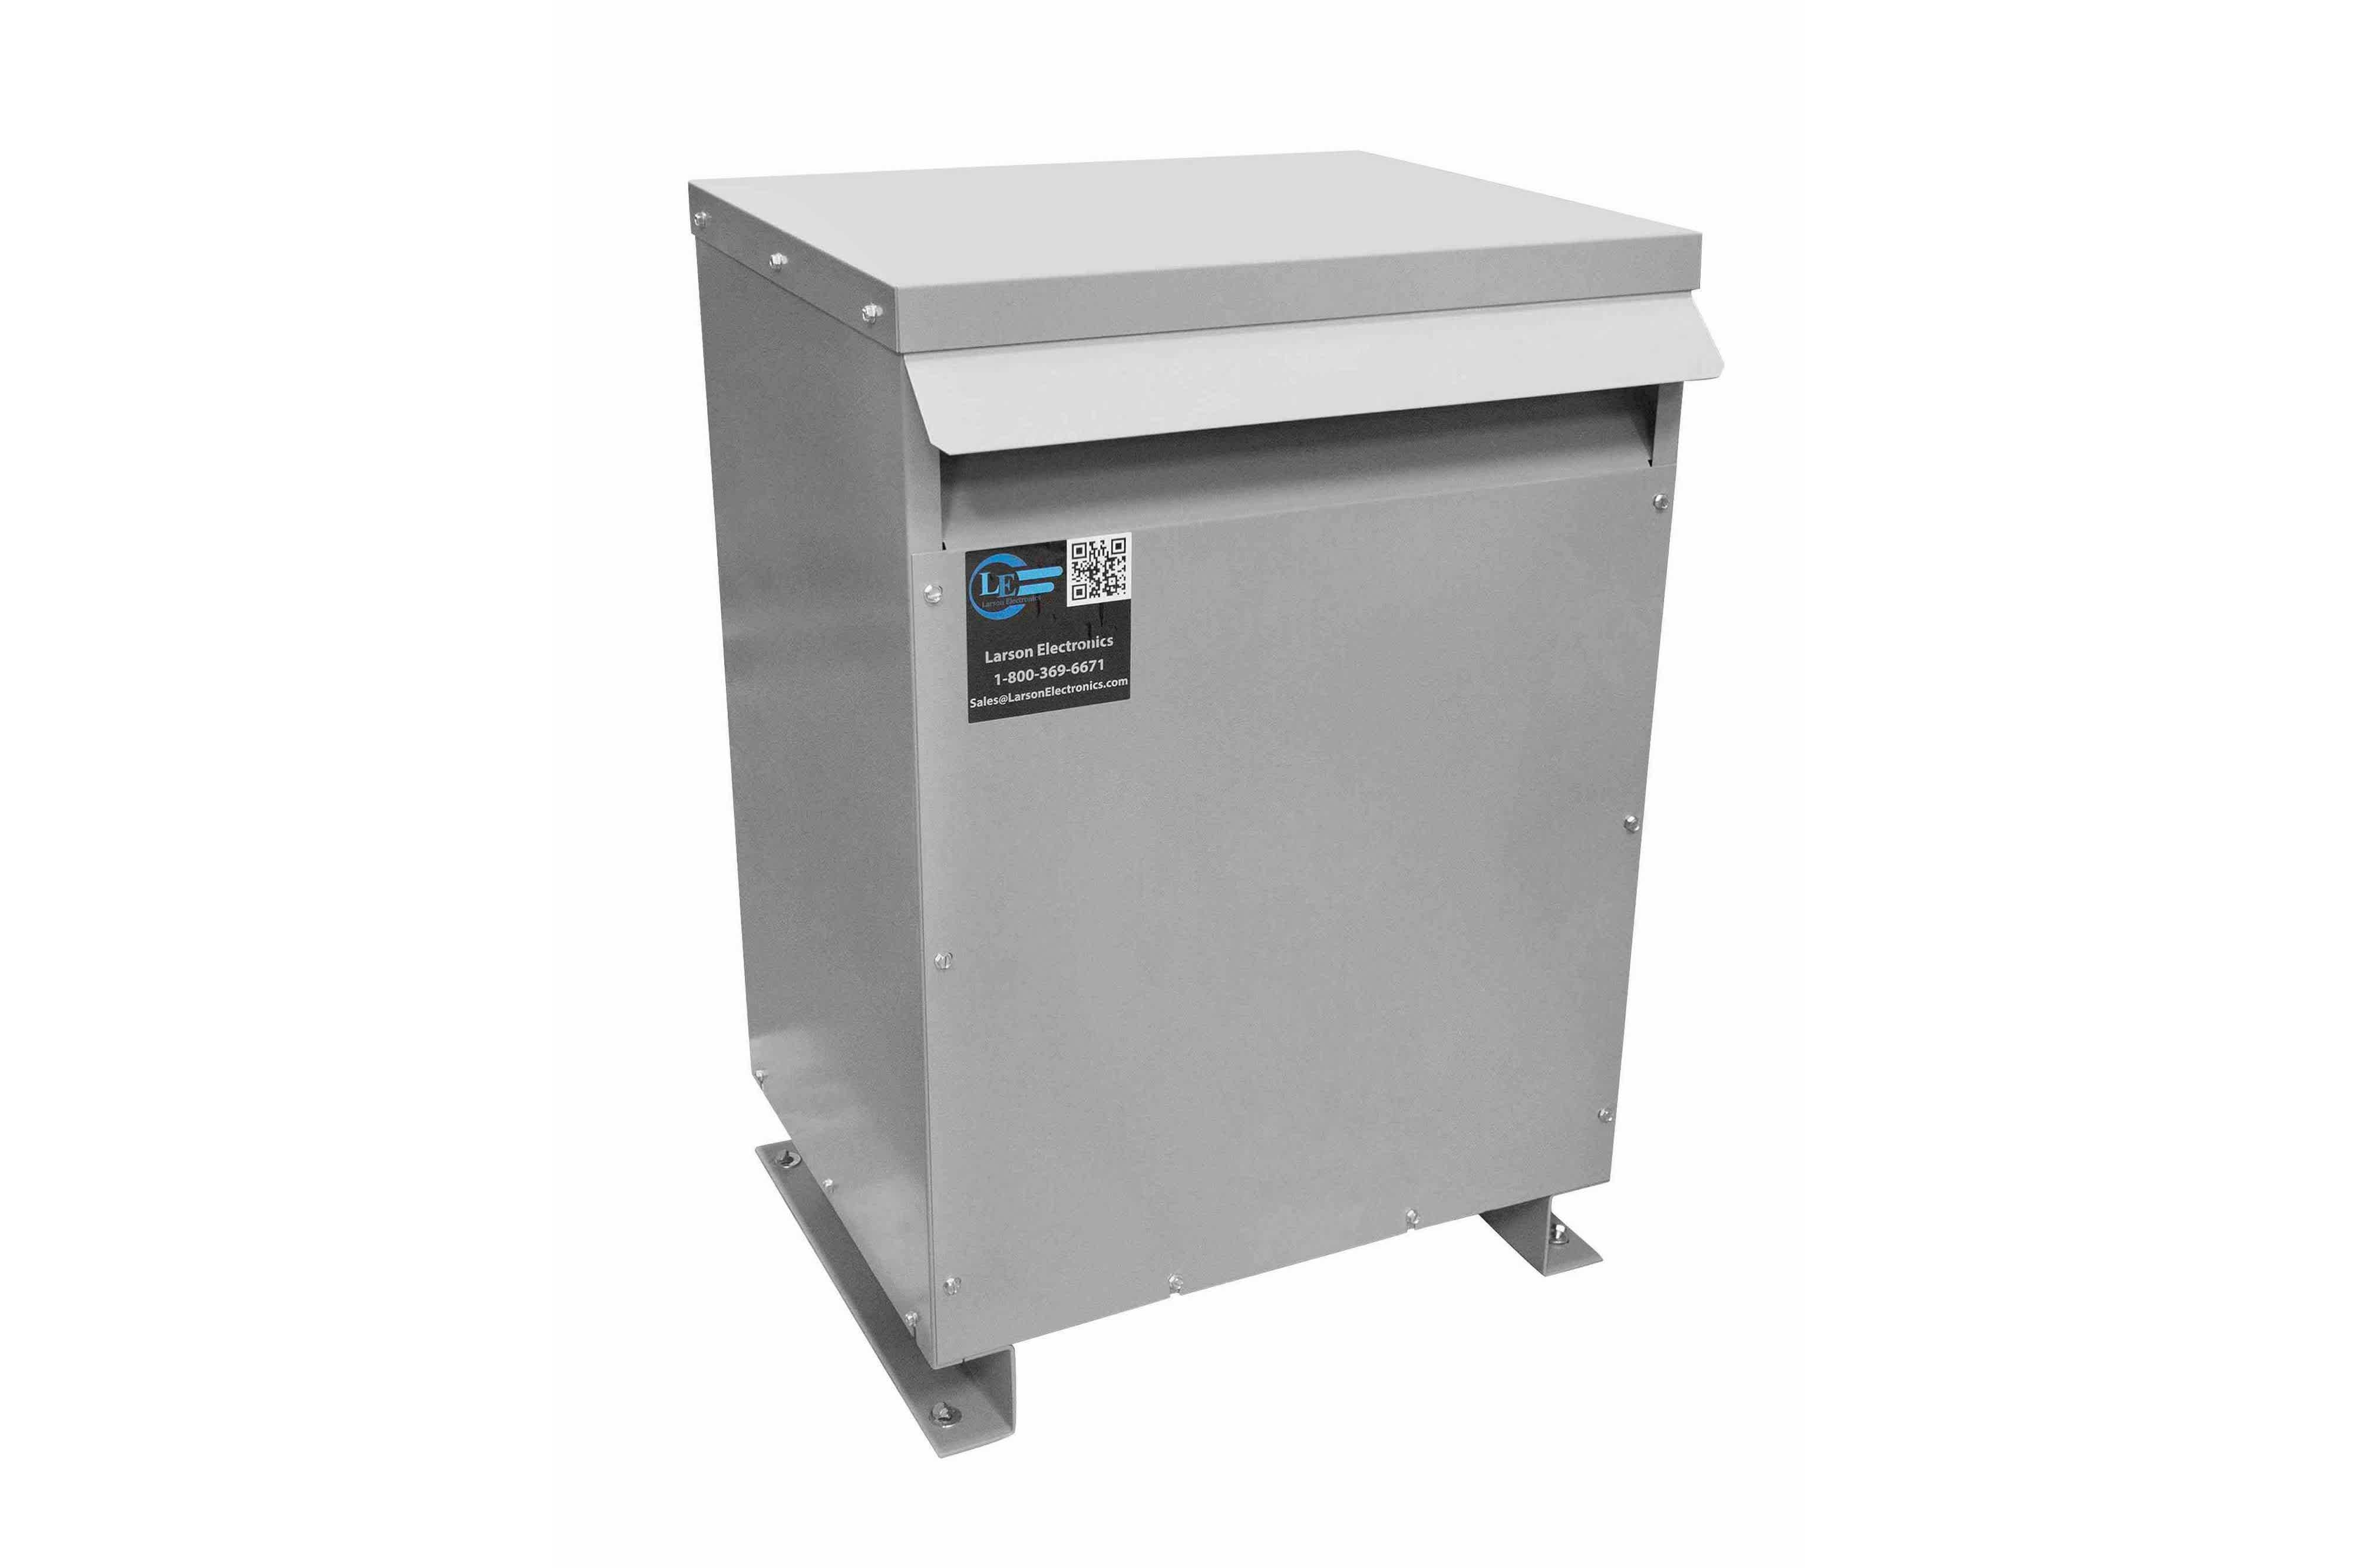 37.5 kVA 3PH Isolation Transformer, 480V Delta Primary, 380V Delta Secondary, N3R, Ventilated, 60 Hz